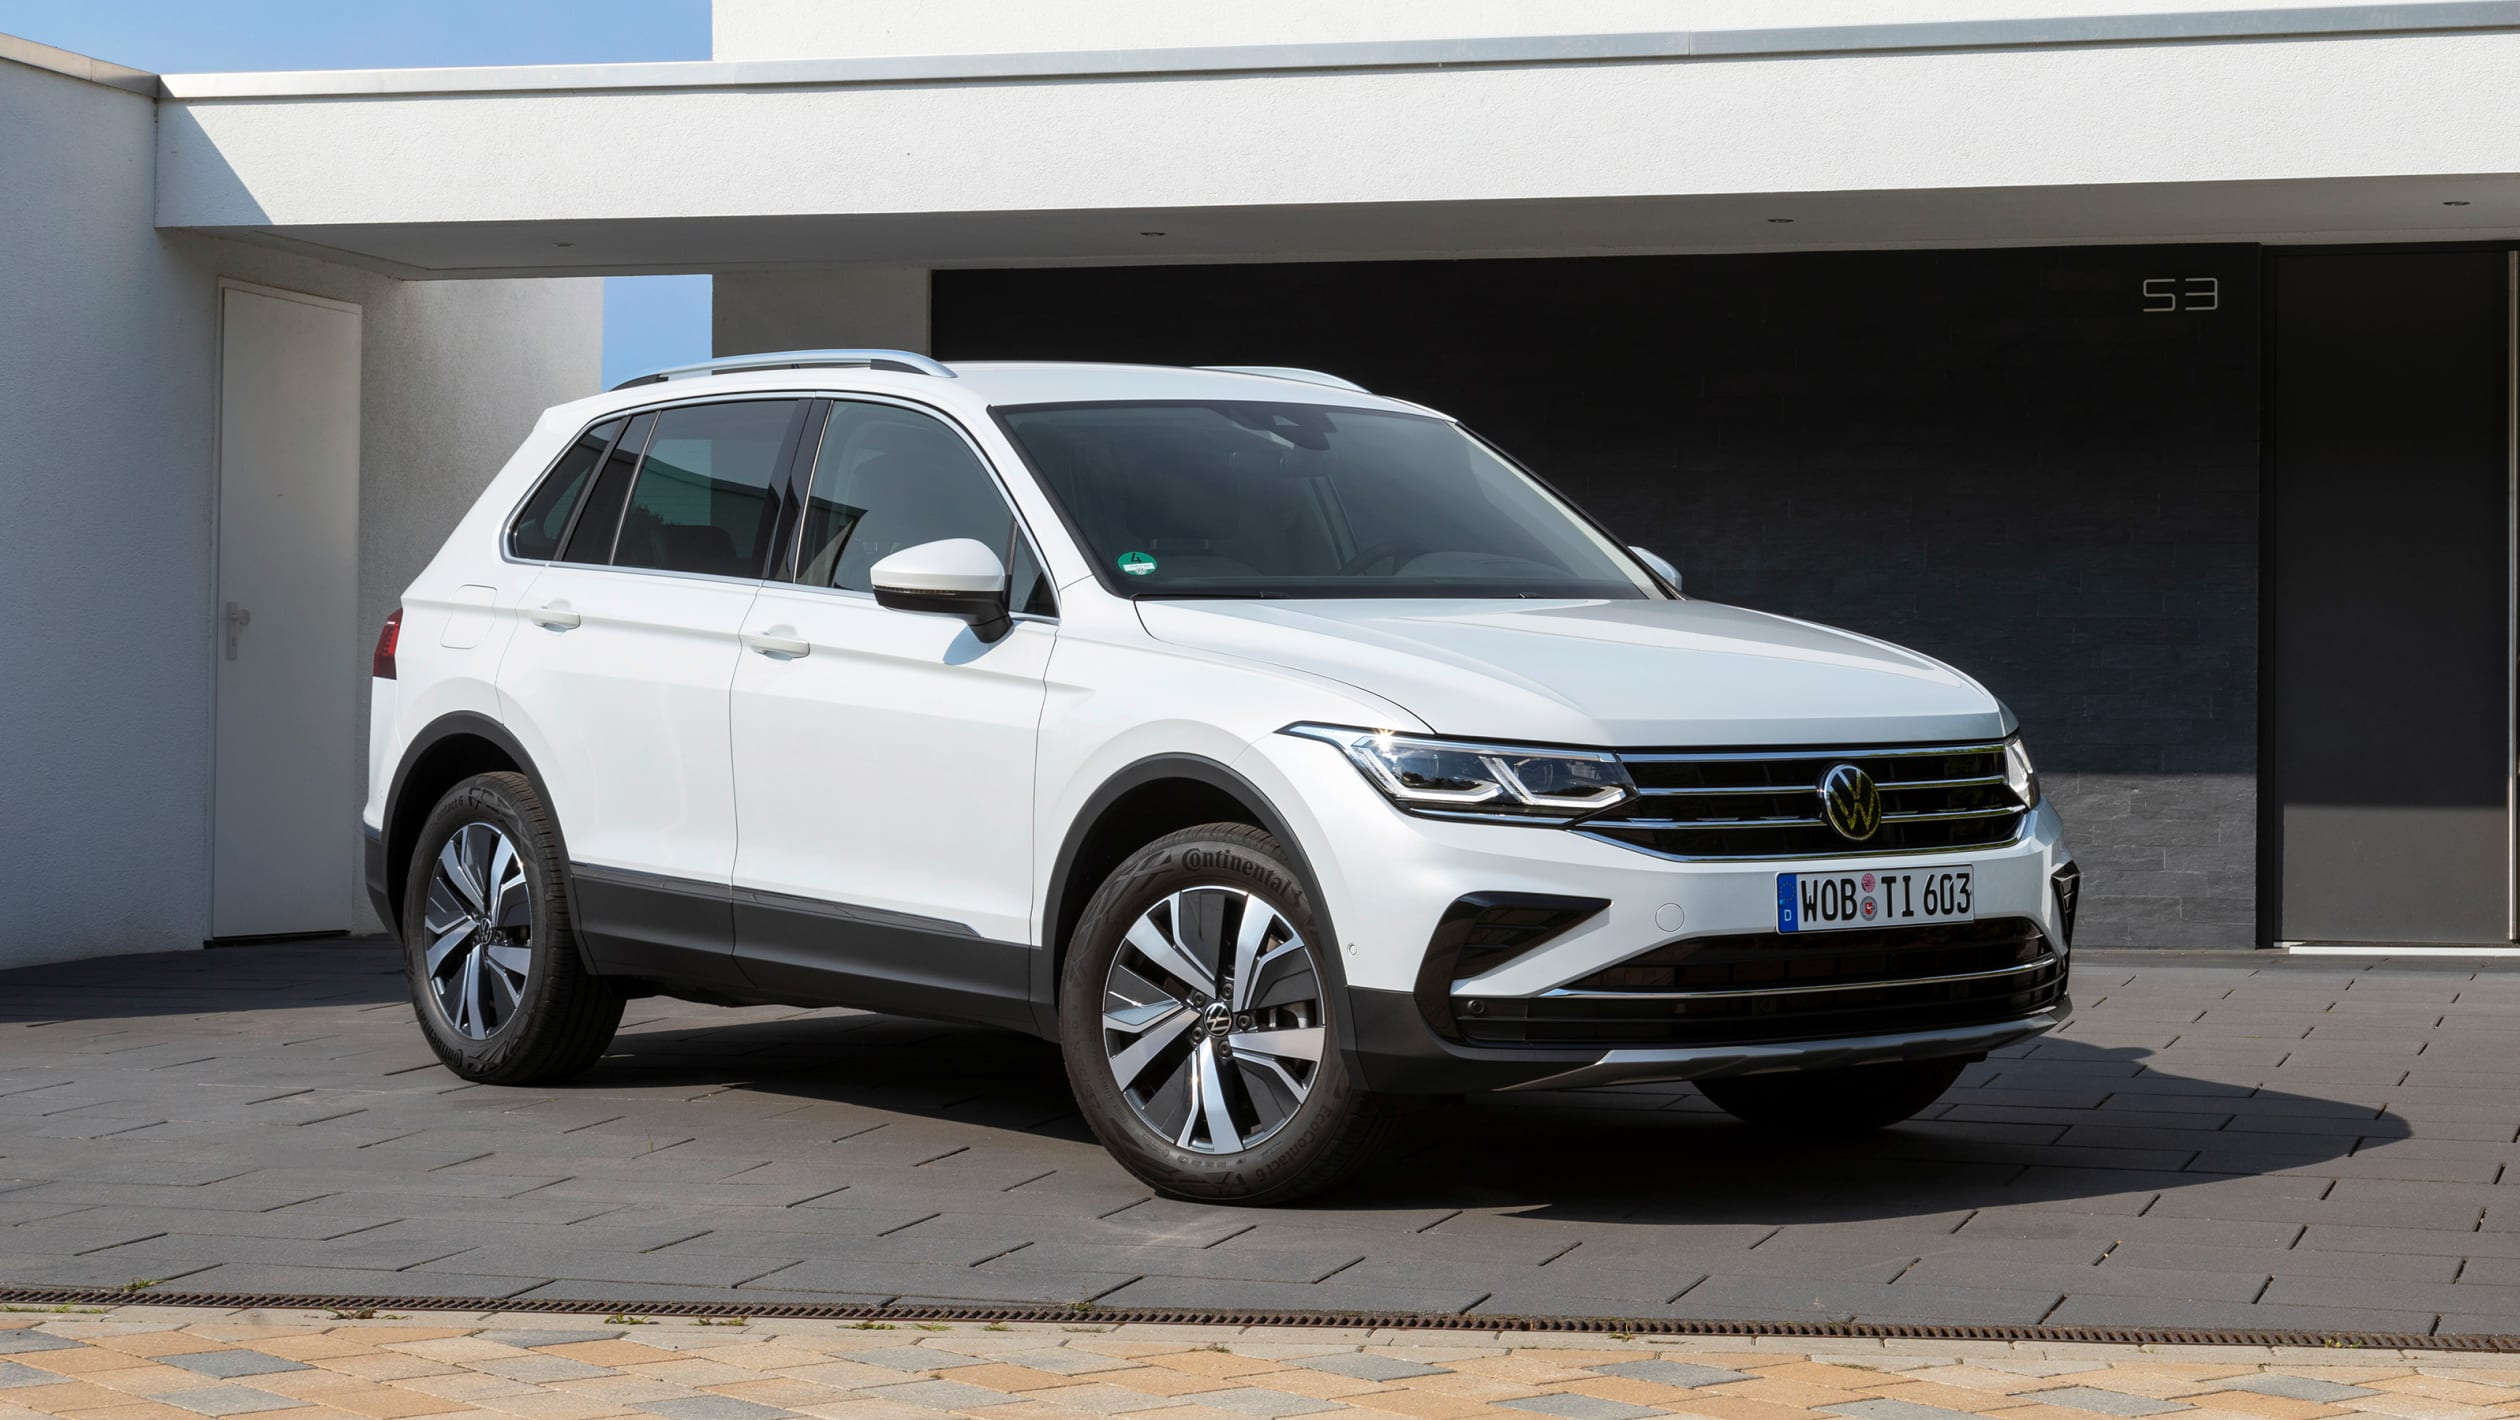 2021 Volkswagen Tiguan eHybrid review - Automotive Daily